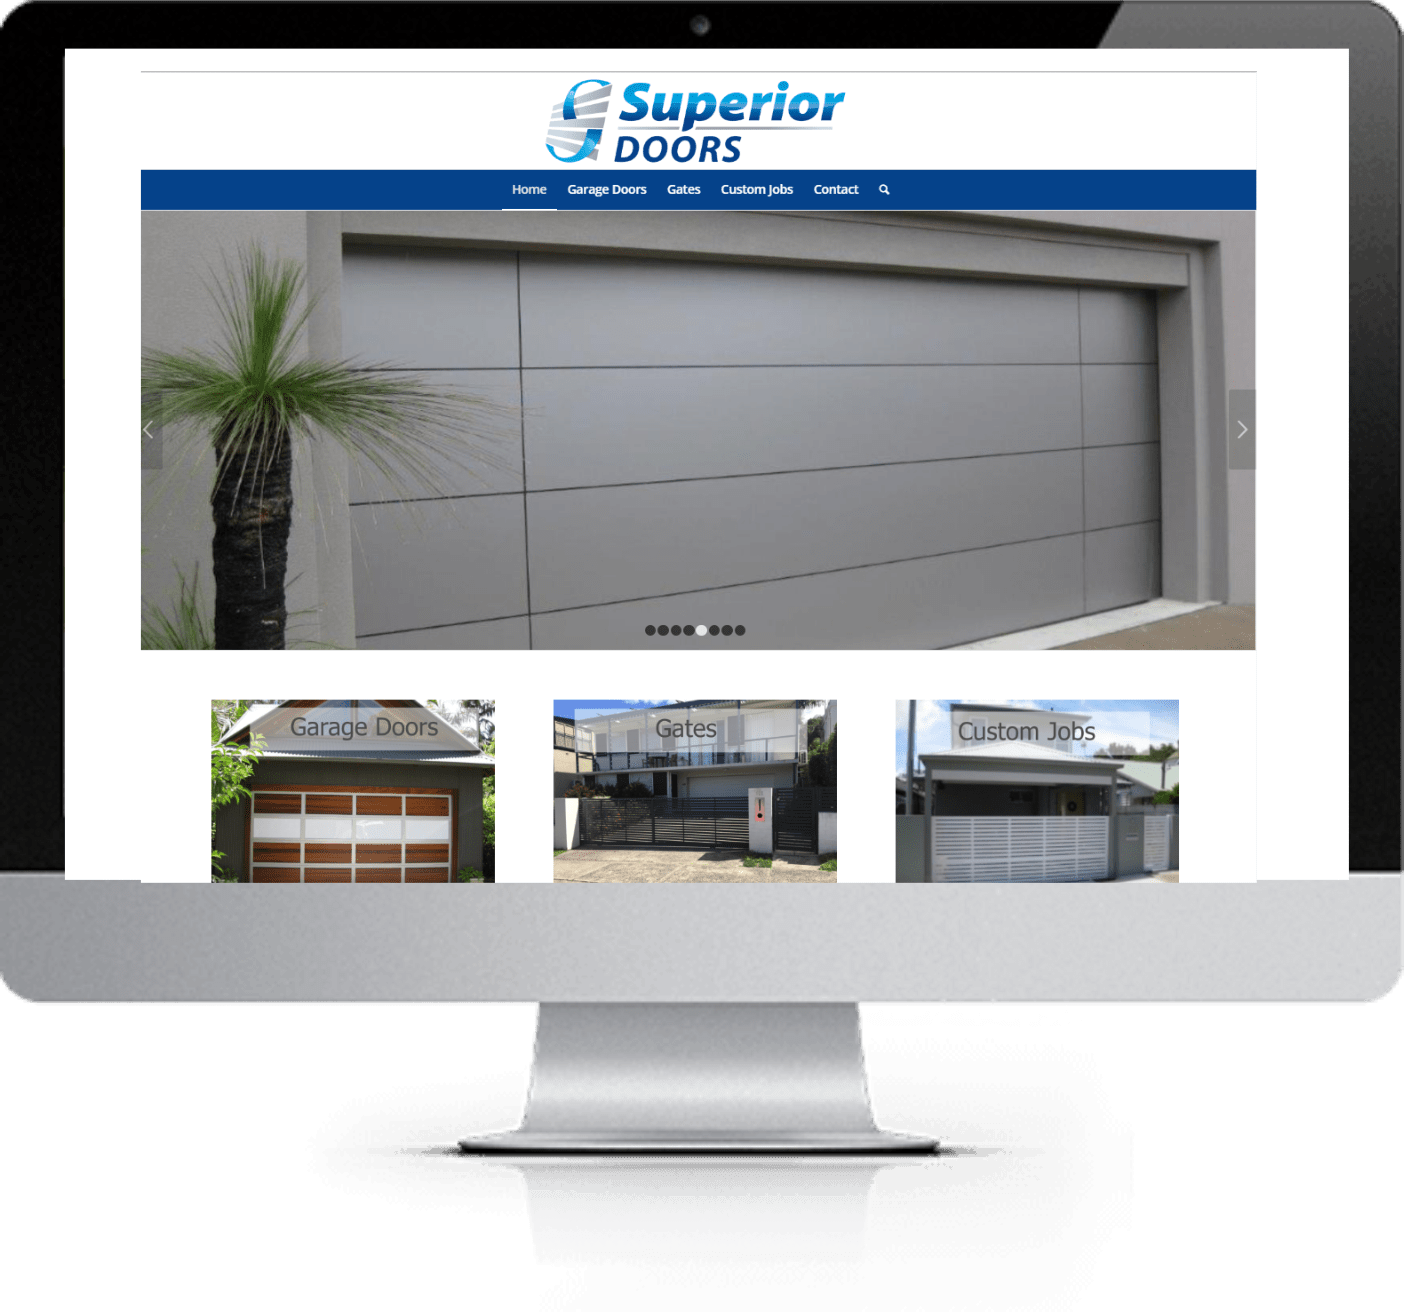 Website Redesign - Superior Doors - After